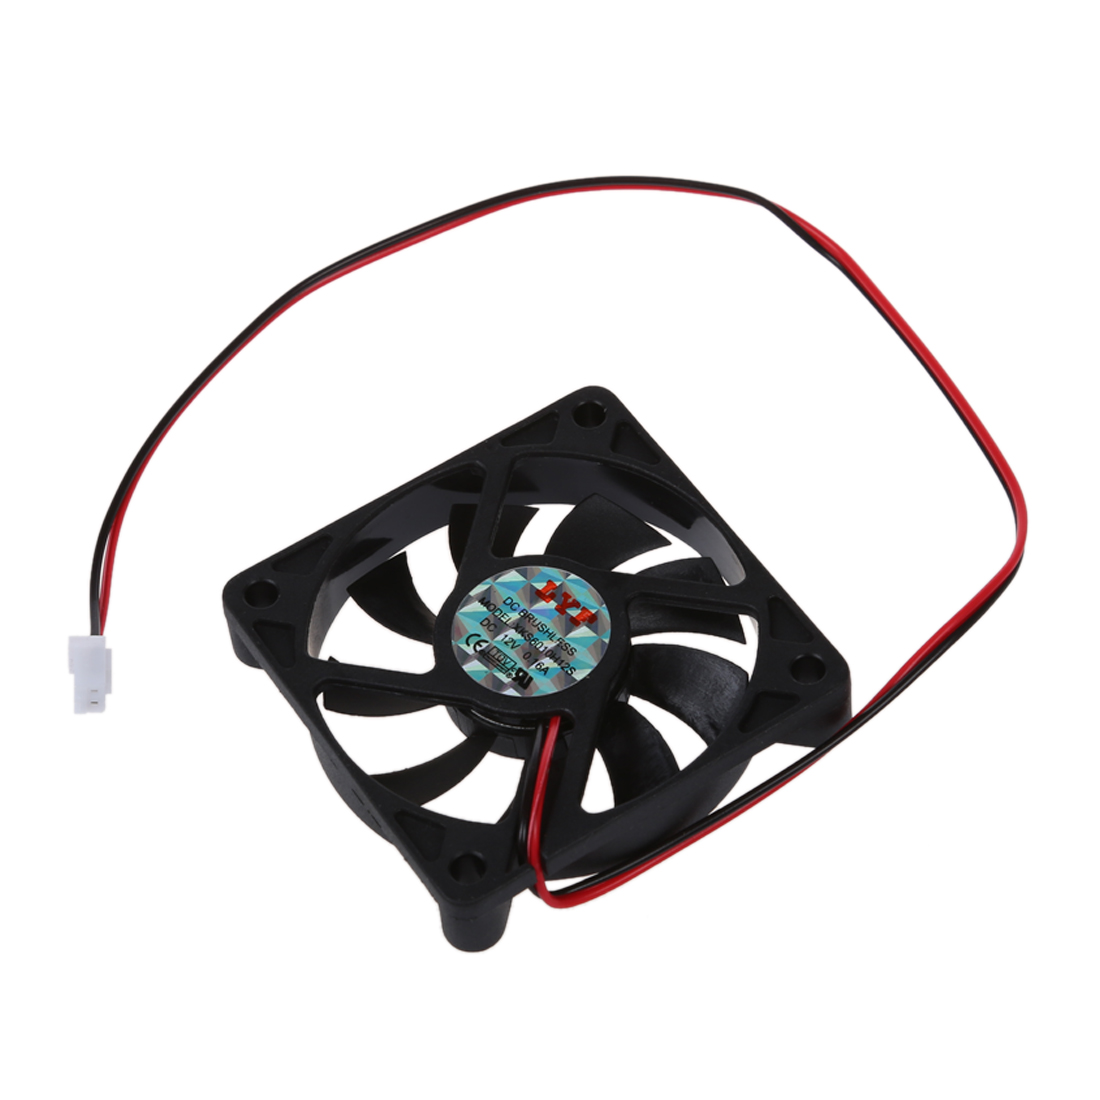 Desktop PC Case DC 12V 0.16A 60mm 2 Pin Cooler Cooling Fan gdstime 10 pcs dc 12v 14025 pc case cooling fan 140mm x 25mm 14cm 2 wire 2pin connector computer 140x140x25mm